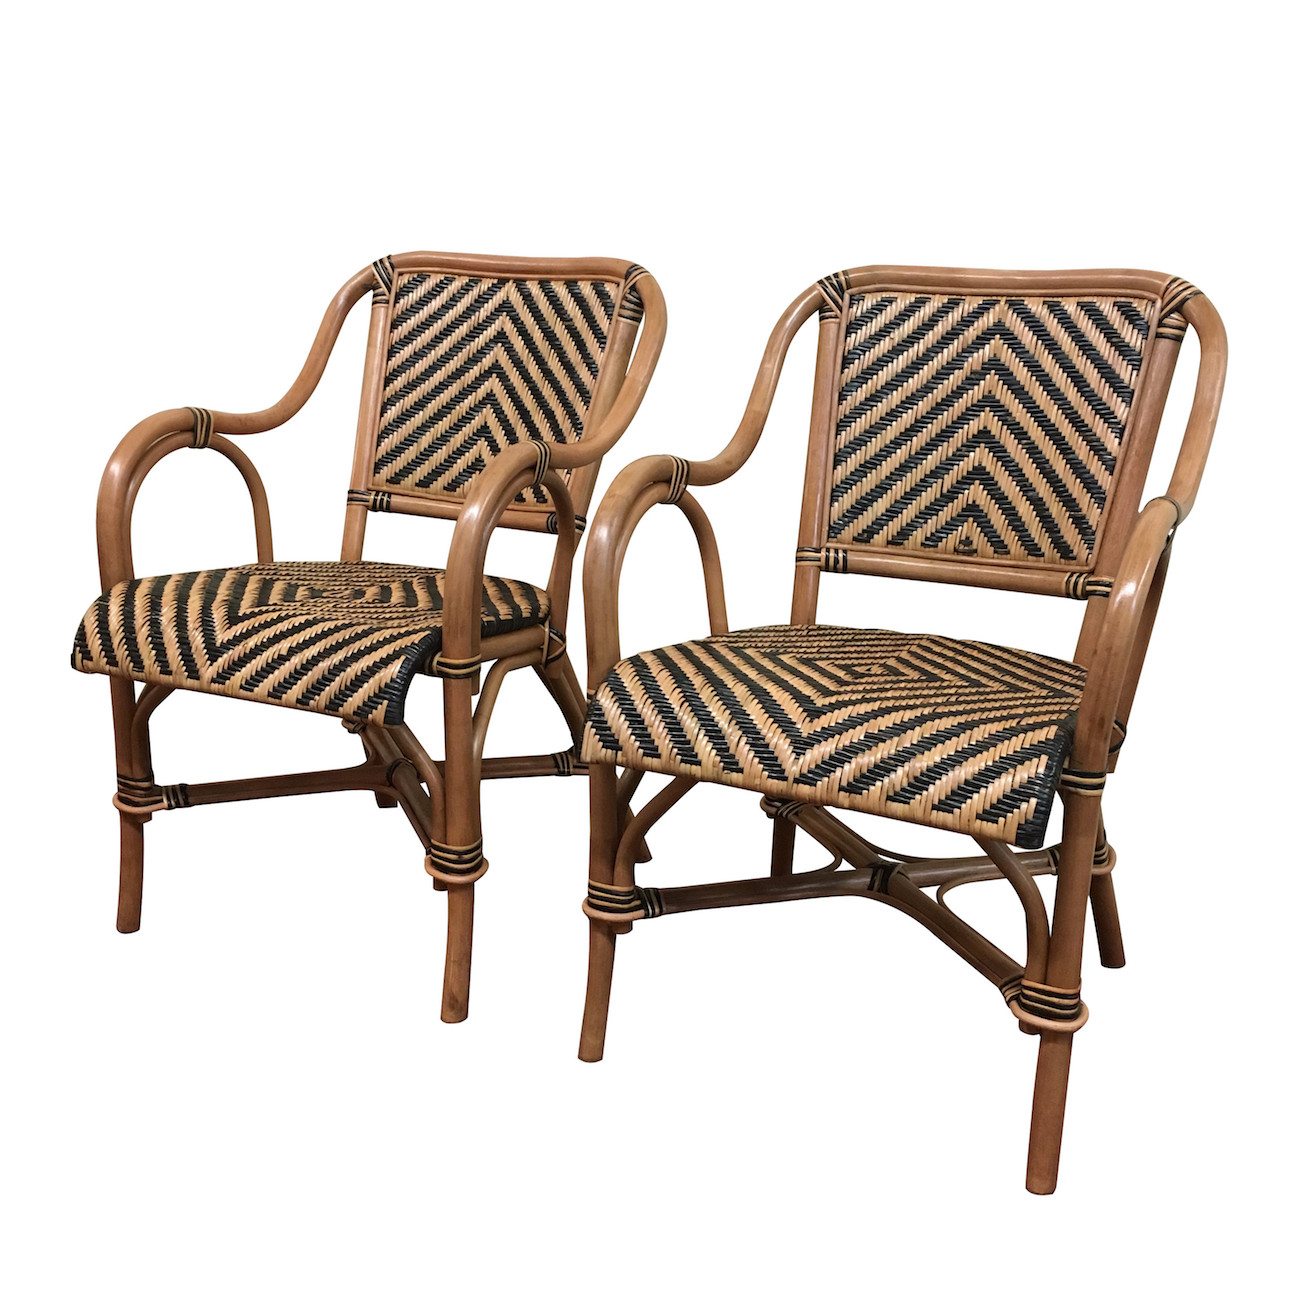 Rattan Dining Chairs: A Pair Of Safari Rattan Dining Arm Chairs